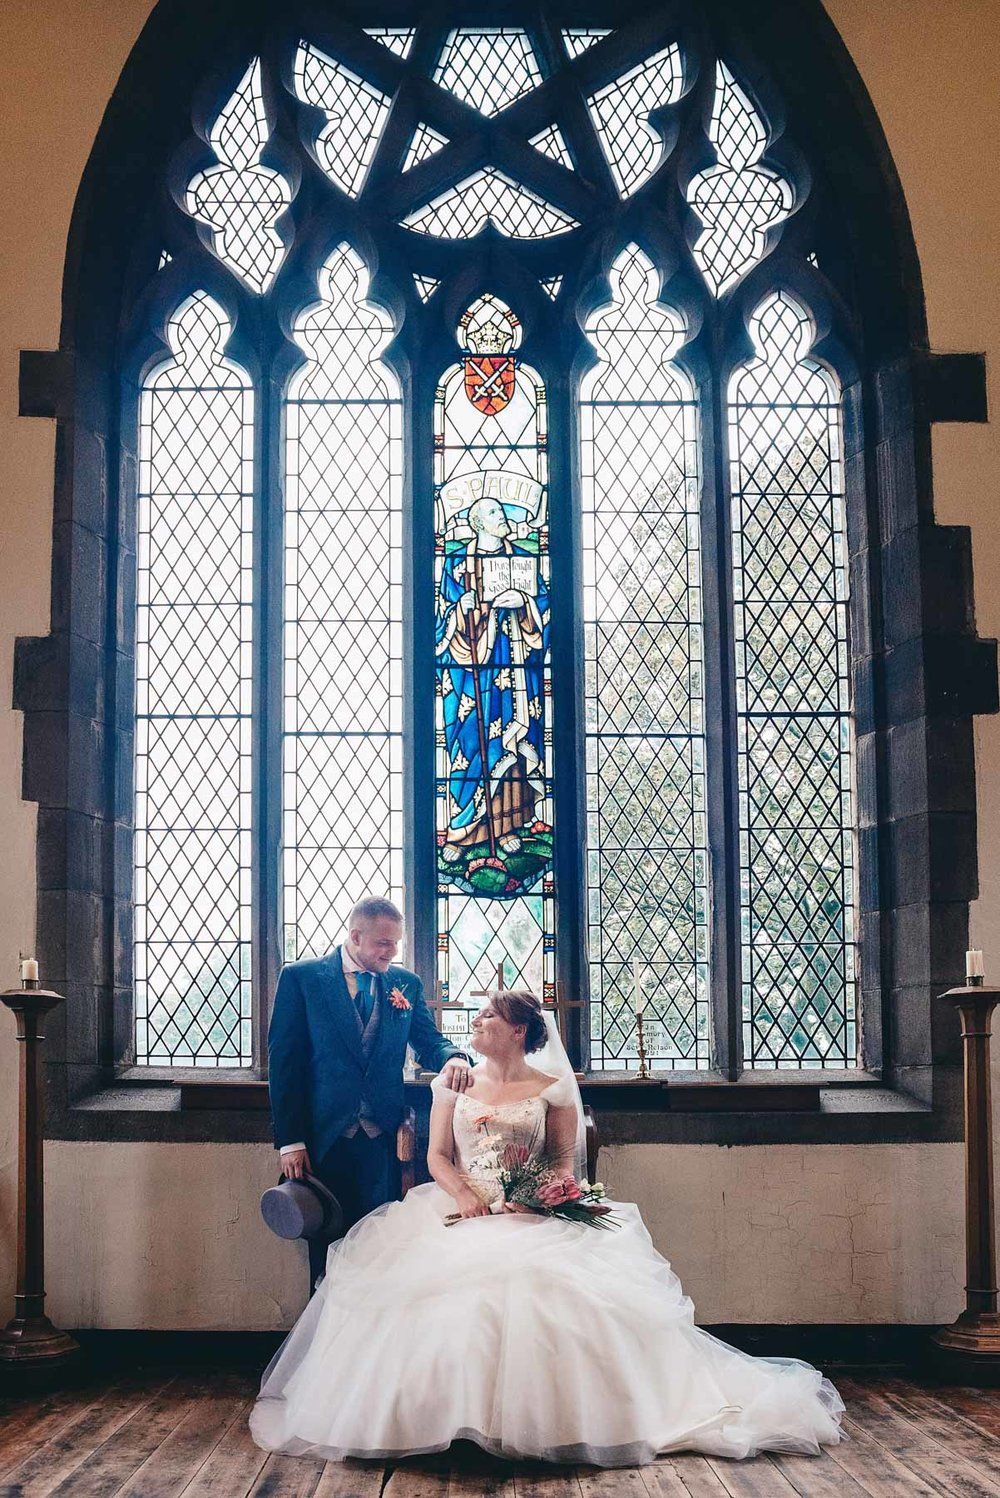 Bride and groom pose underneath window